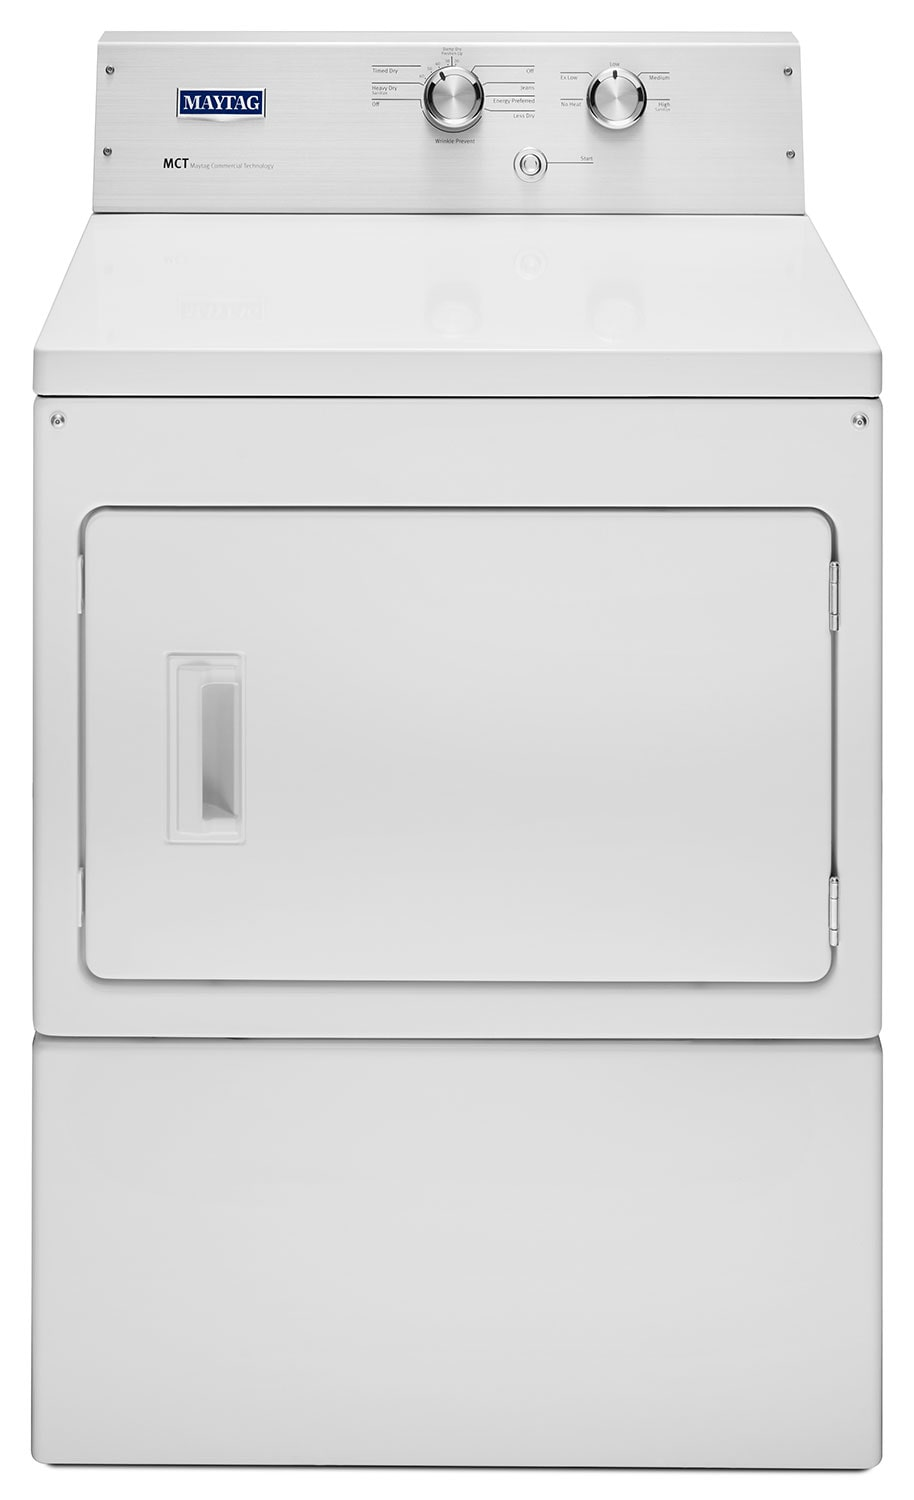 Washers and Dryers - Maytag White Electric Dryer (7.4 Cu. Ft.) - YMEDP475EW